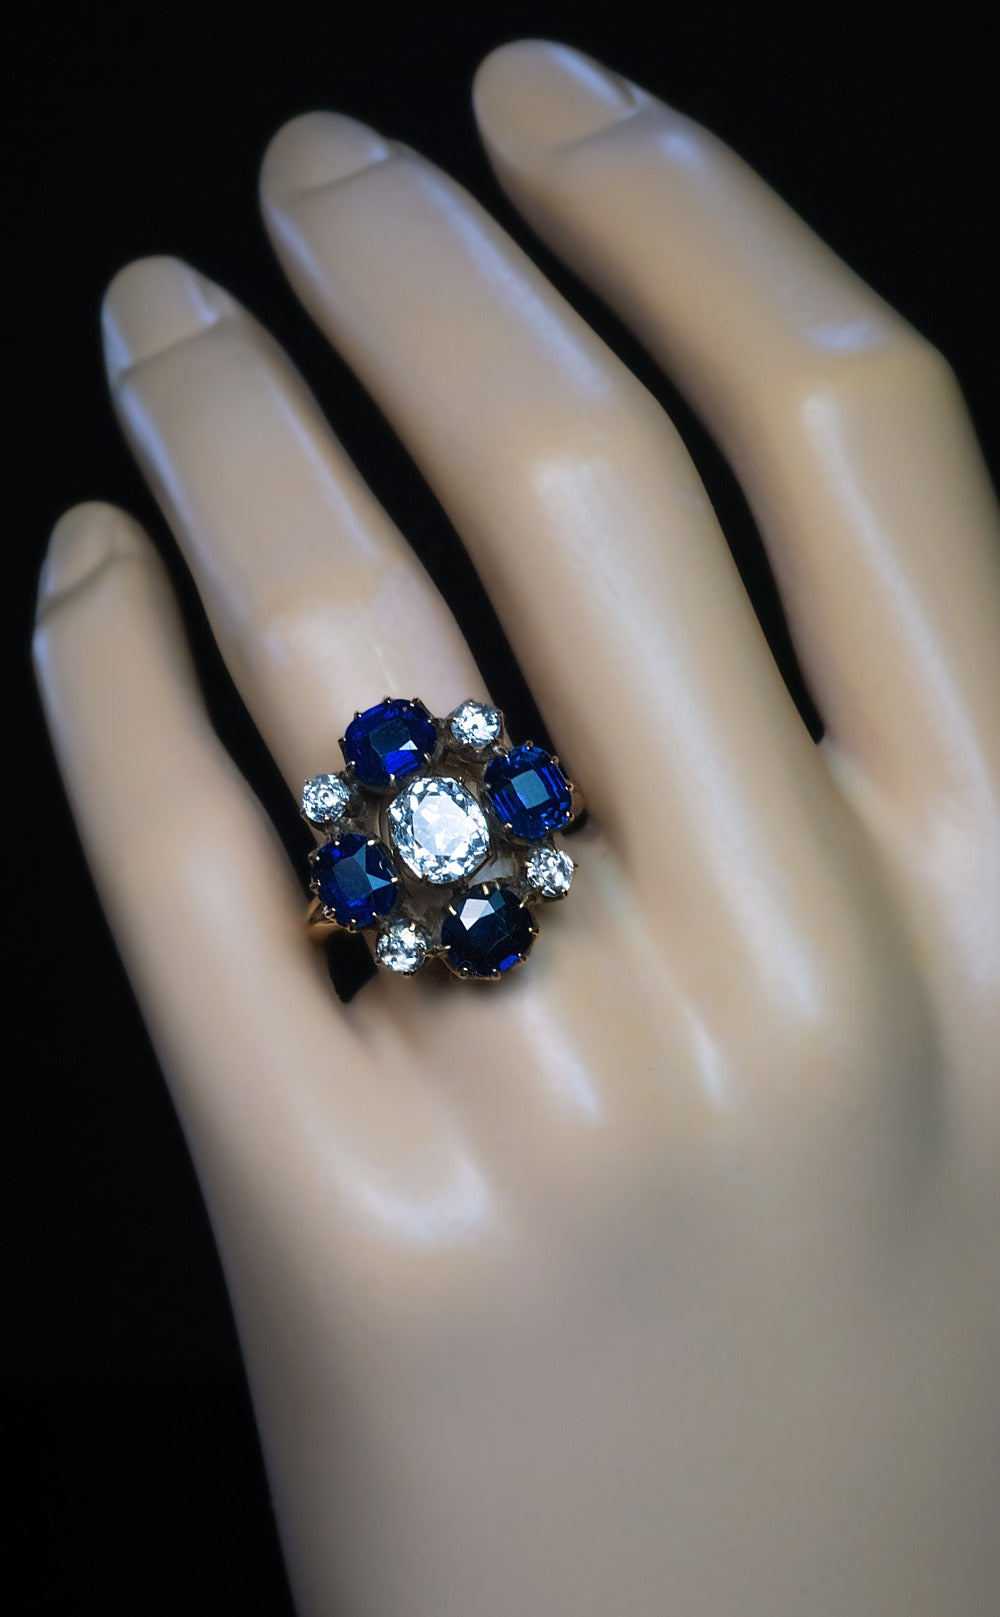 Russian Imperial Era Antique Sapphire Diamond Gold Cluster Ring 4